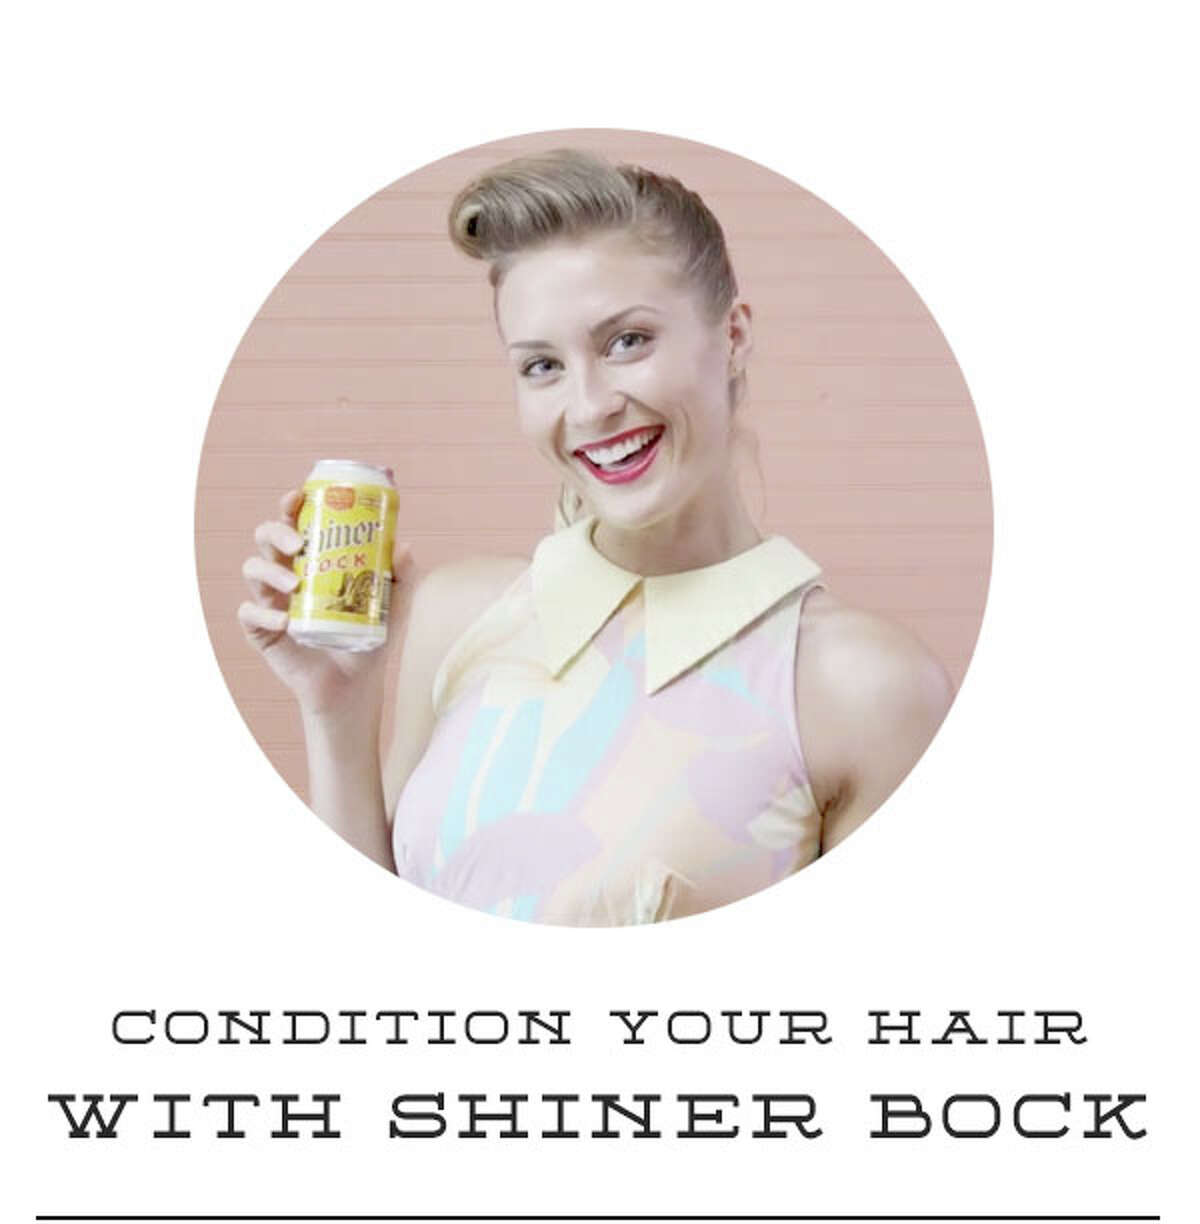 Birds Barshops in Austin are offering a free service: Washing customers' hair with Shiner Bock beer.